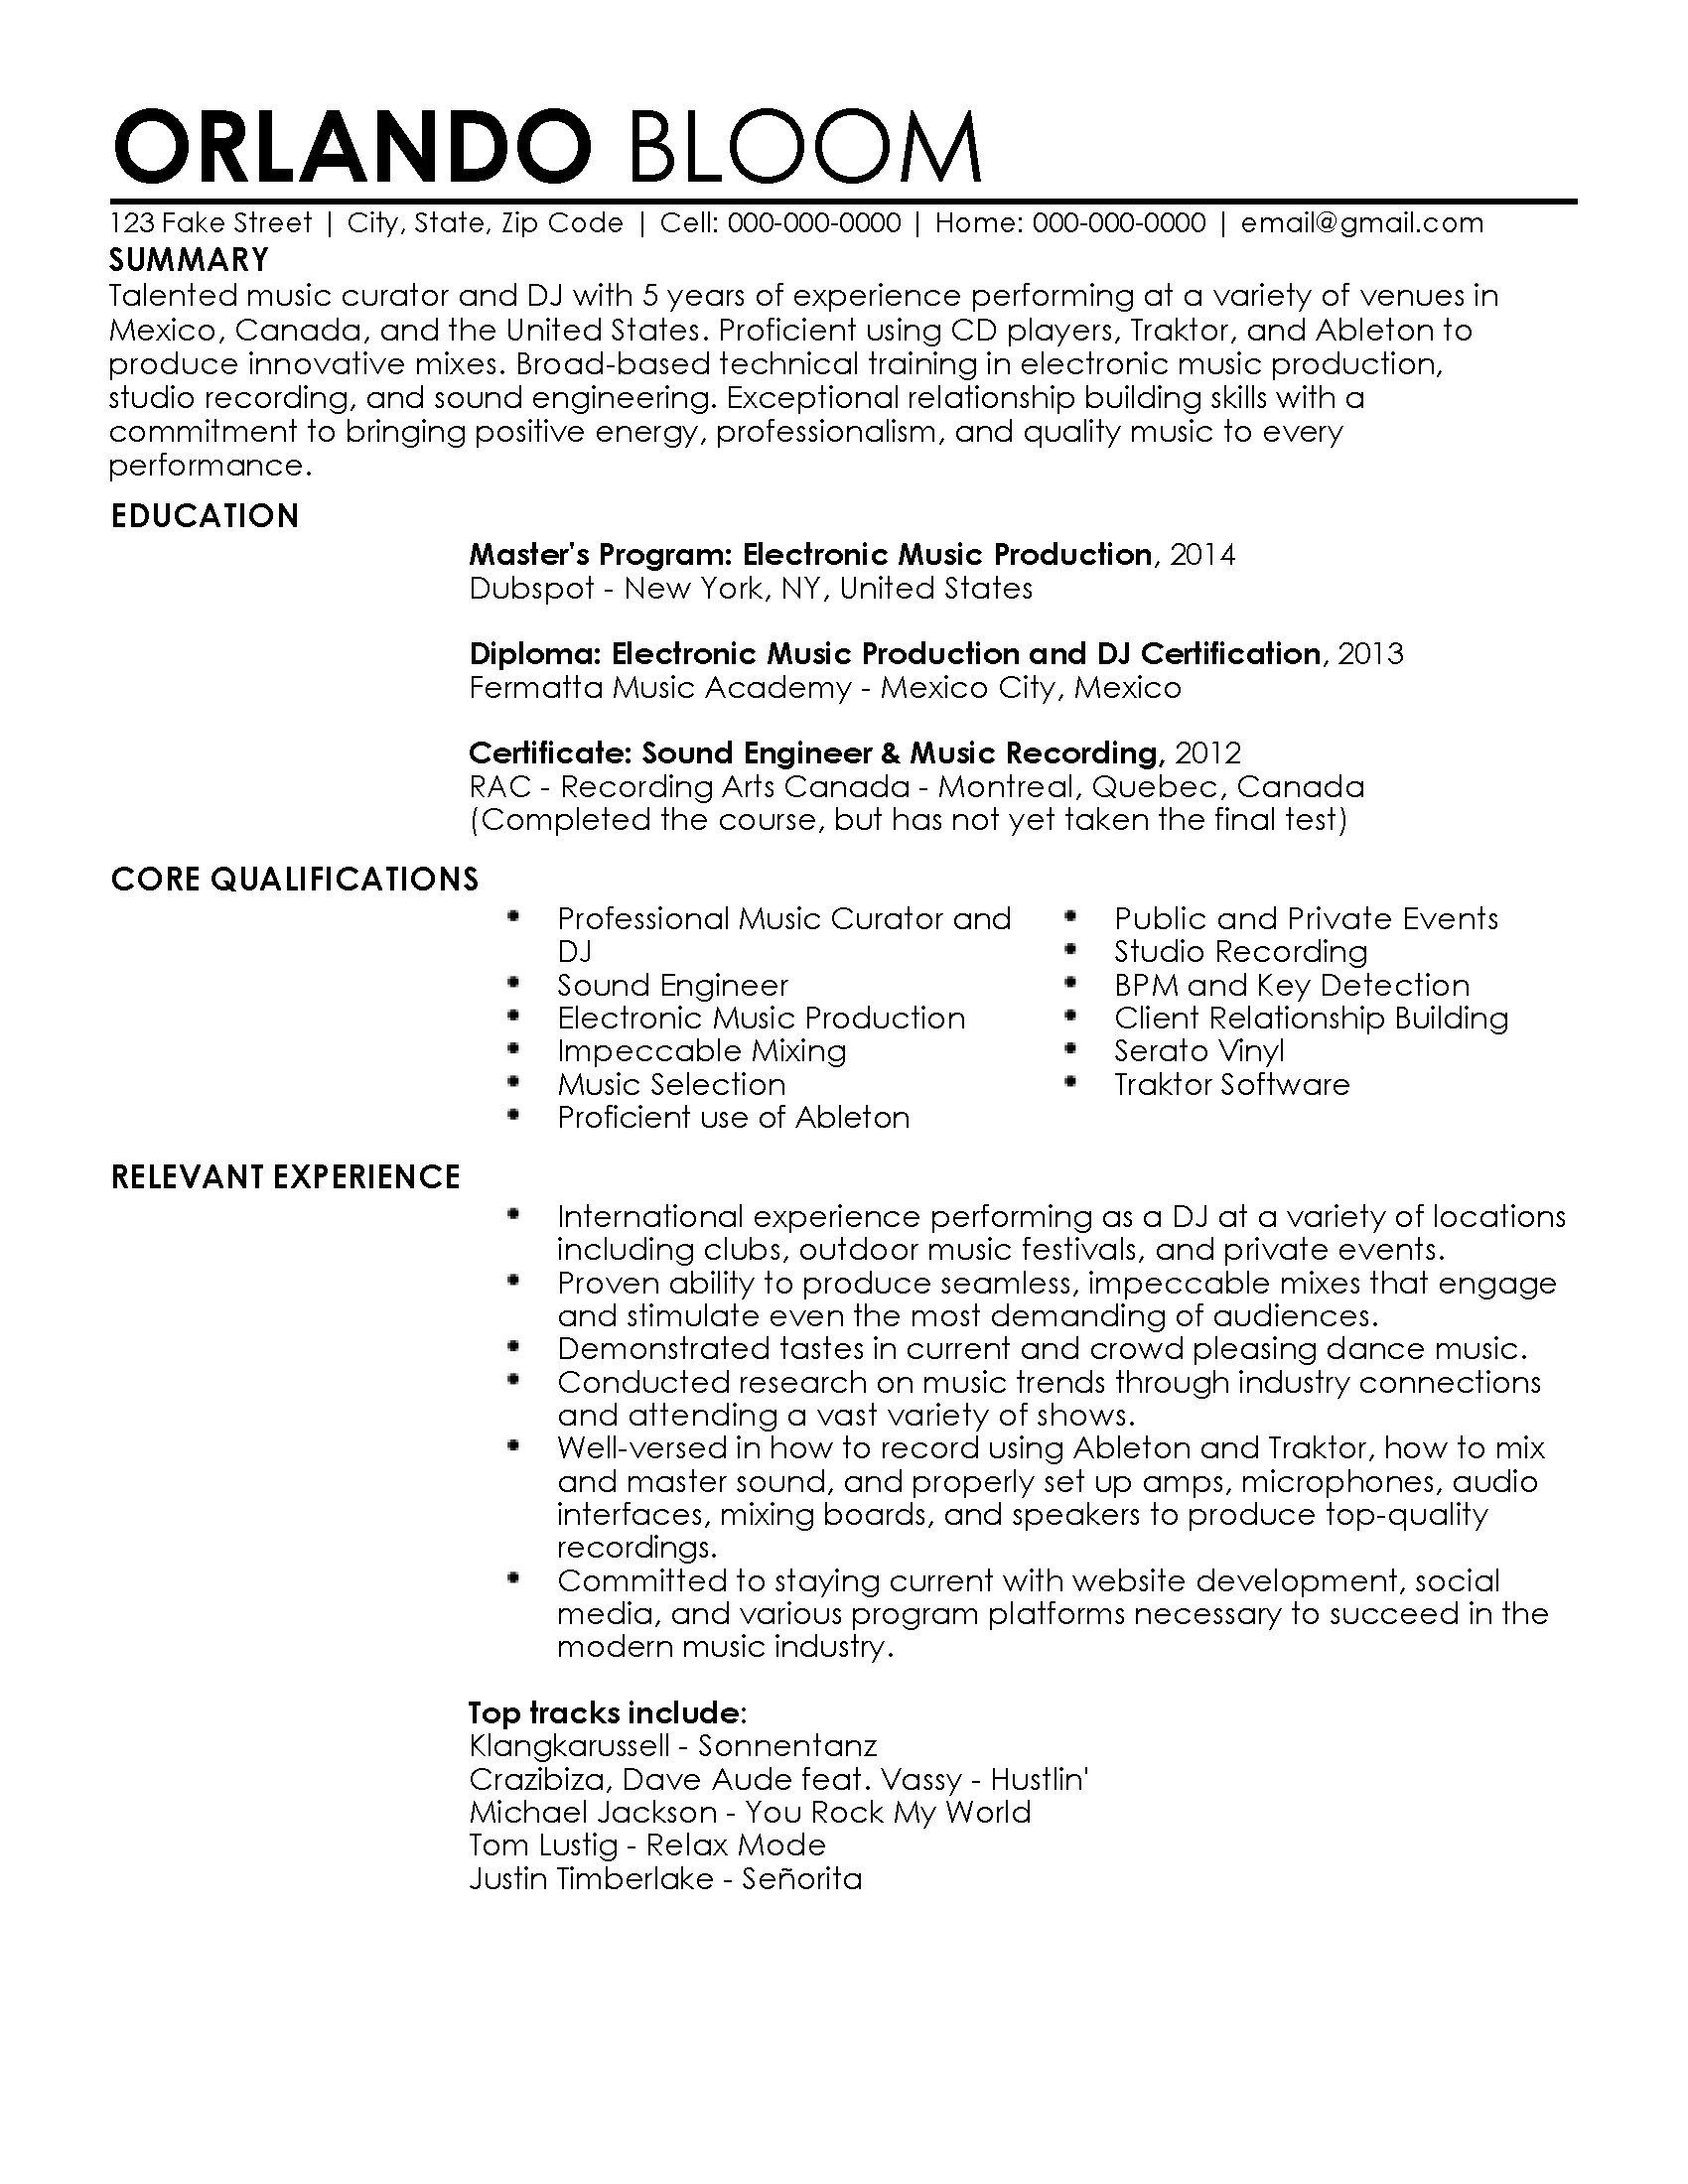 Resume The Music Professional Dj Resume Templates To Showcase Your Talent